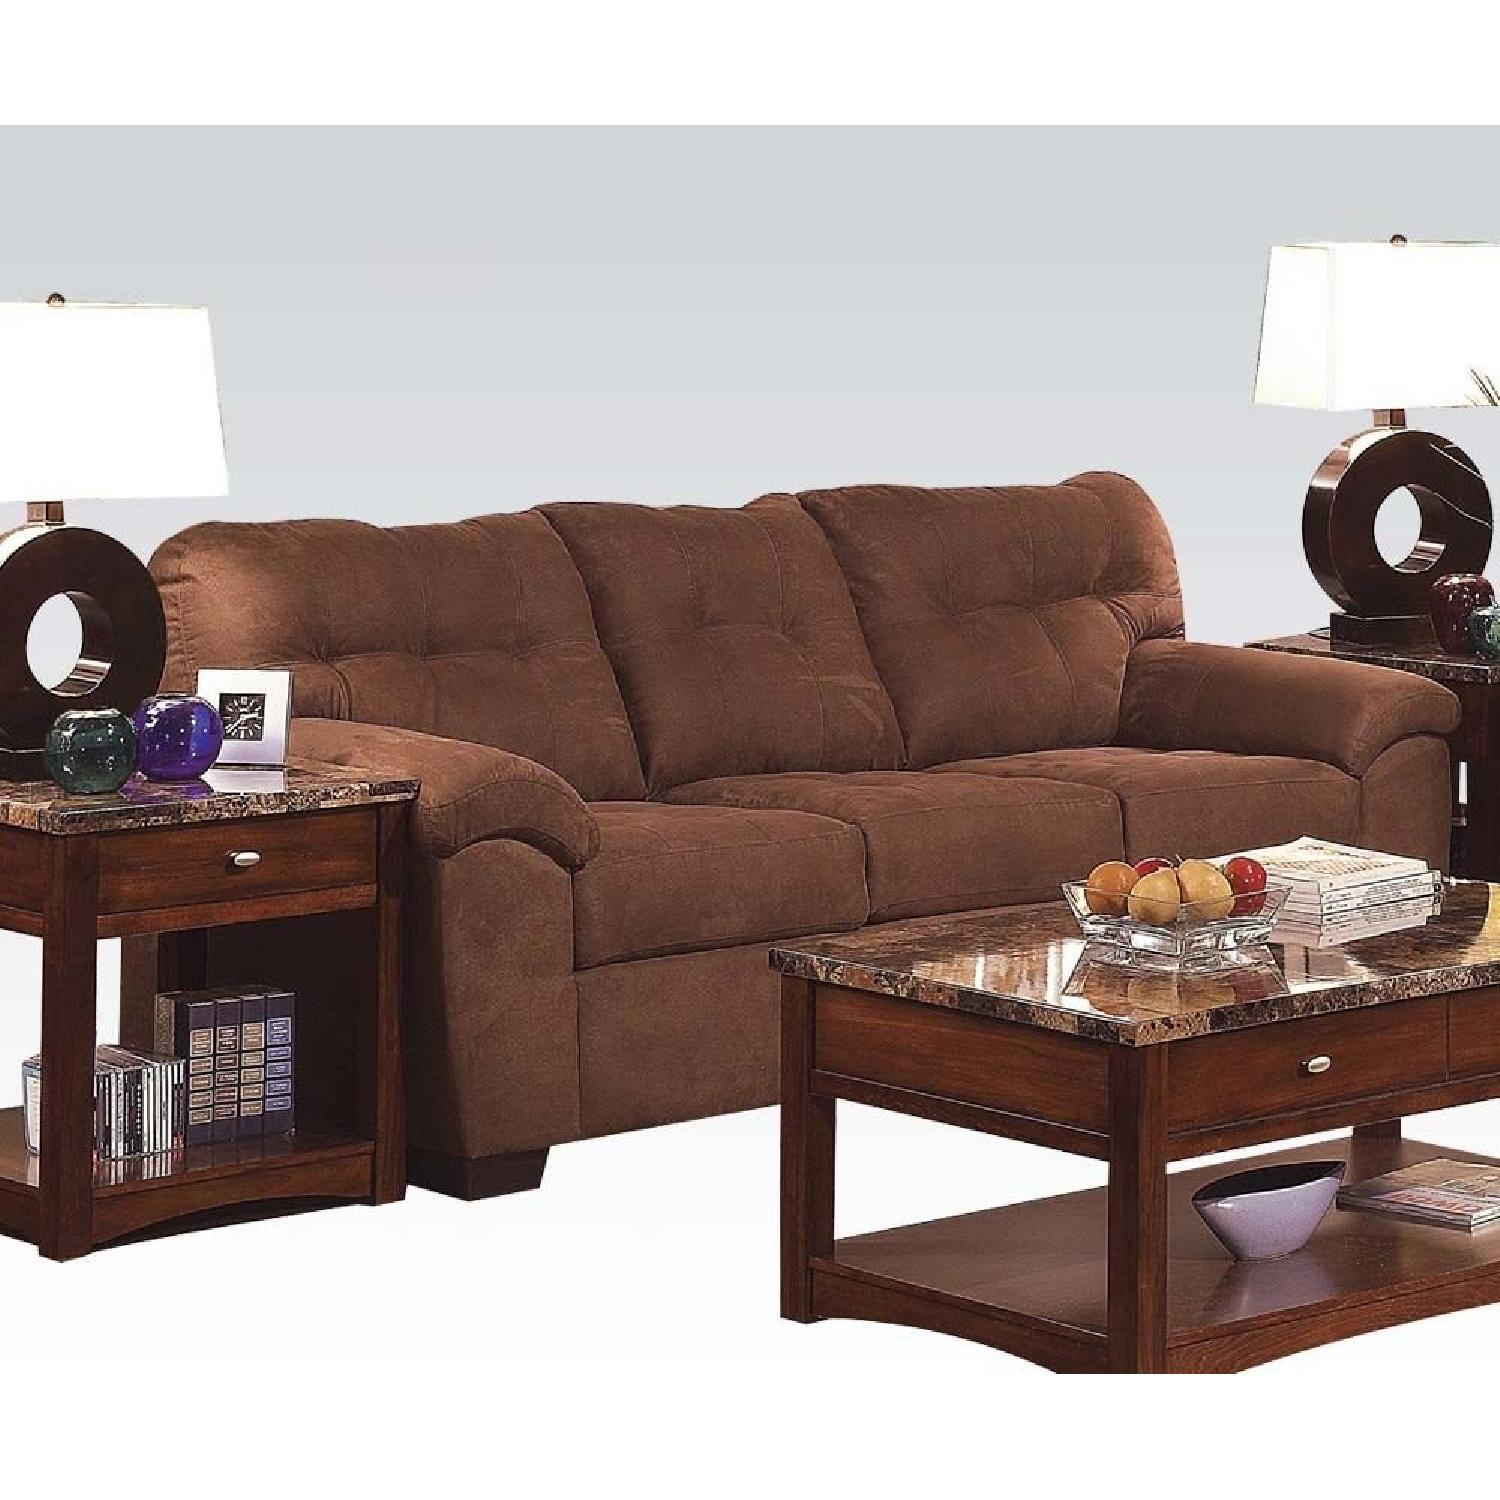 Brown Microfiber Sofa w/ Simmons Cushions w/ Tufted Seat/Back Design